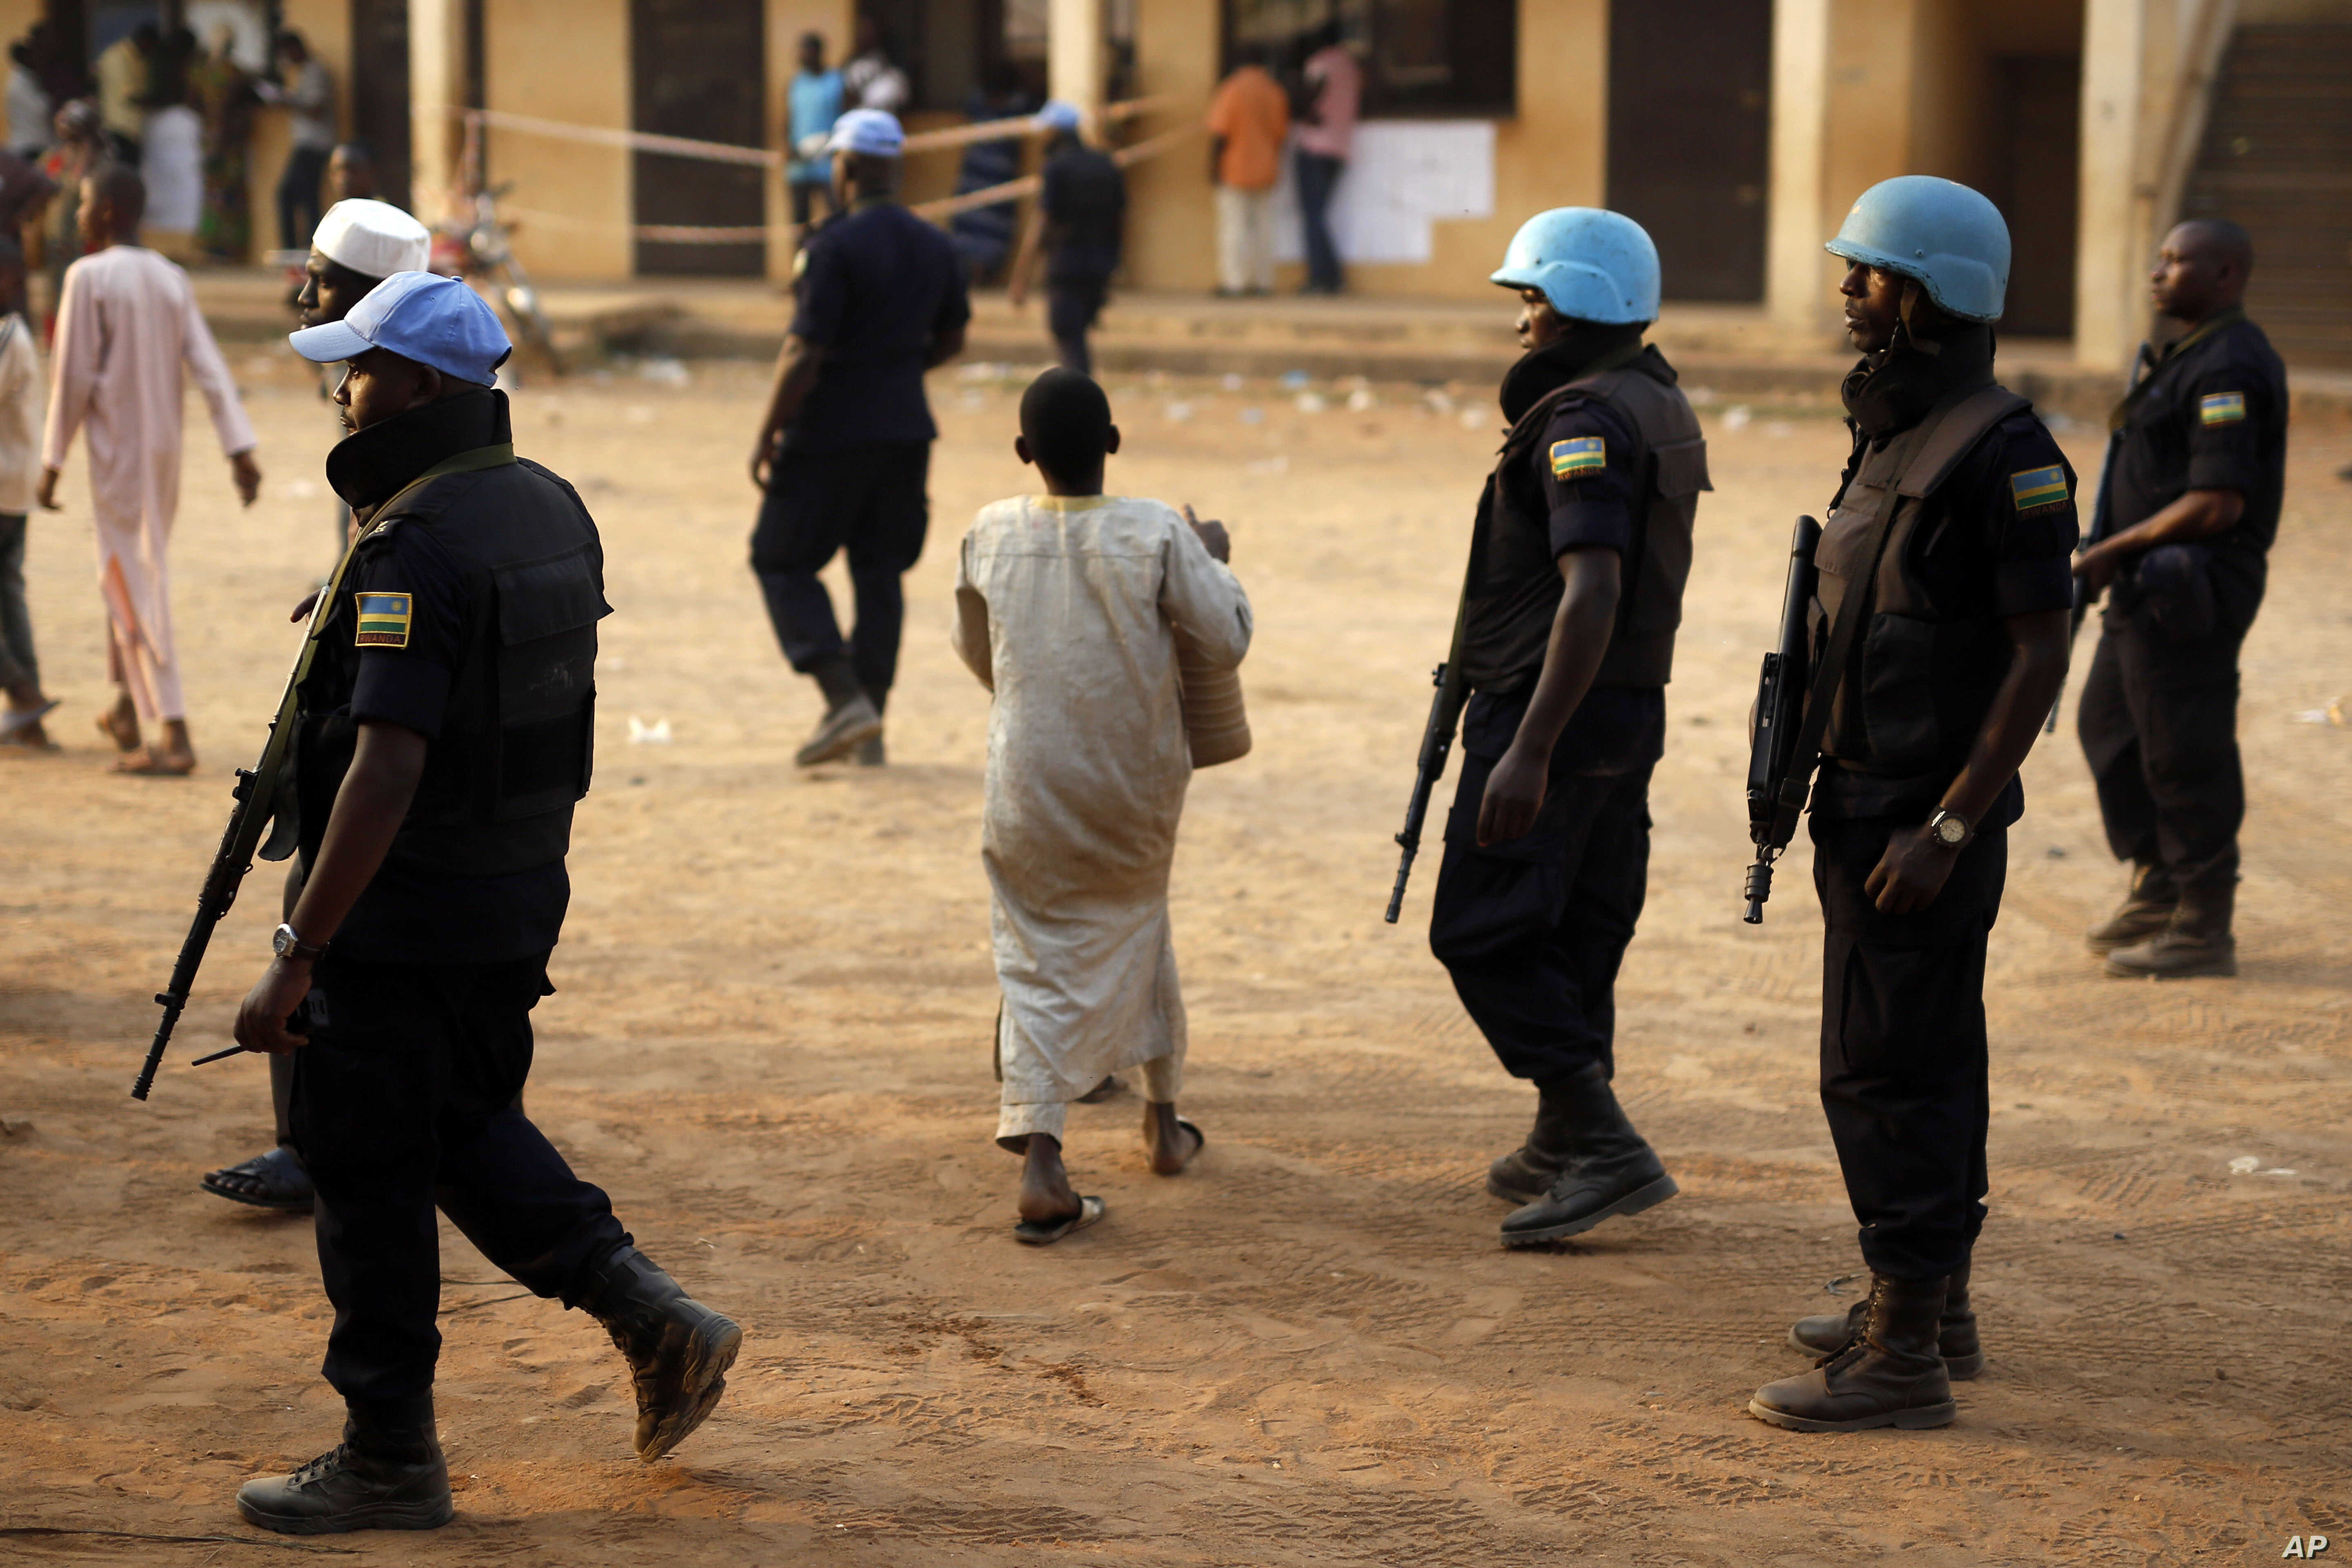 U.N. peacekeepers are seen on patrol in Bangui, capital of the Central African Republic, Feb. 14, 2016. One Cambodian U.N. peacekeeper was killed and eight others were wounded Tuesday in an attack near the town of Bangassou, about 730 km east of Bang...